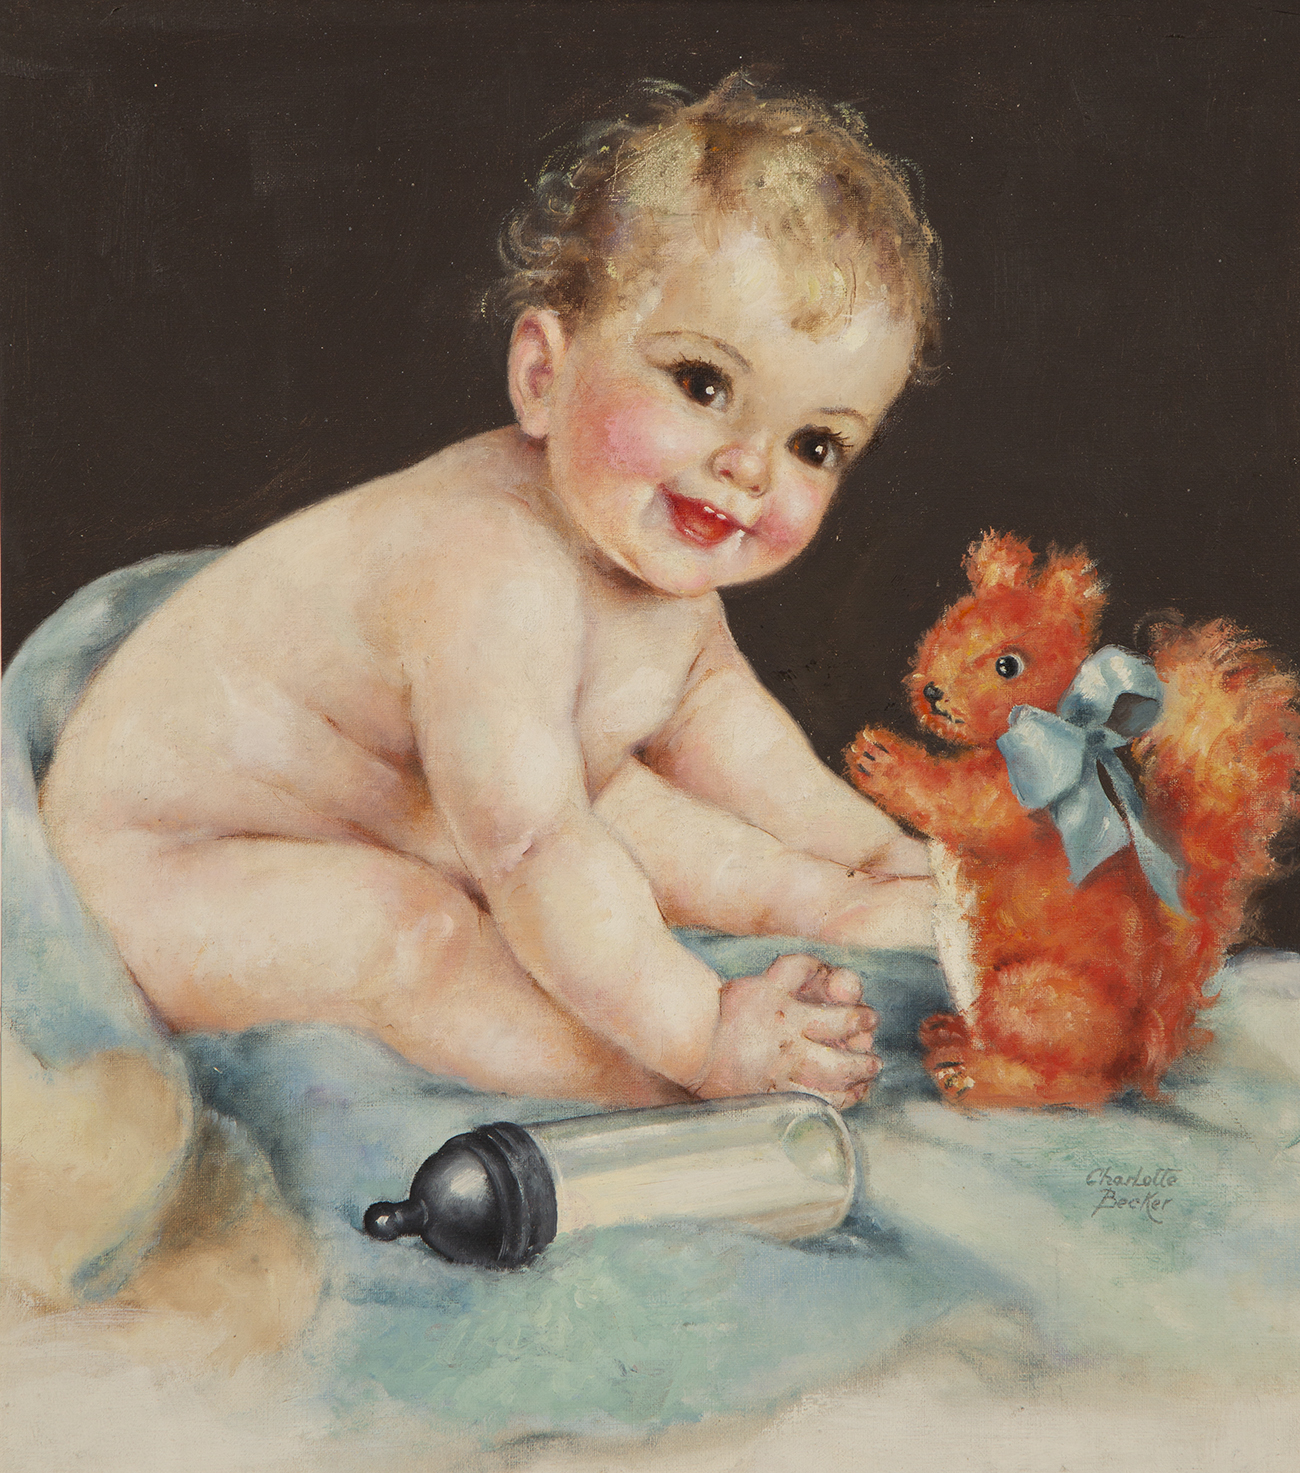 Full view of oil on canvas board illustration featuring a blonde haired baby playing with a toy squirrel